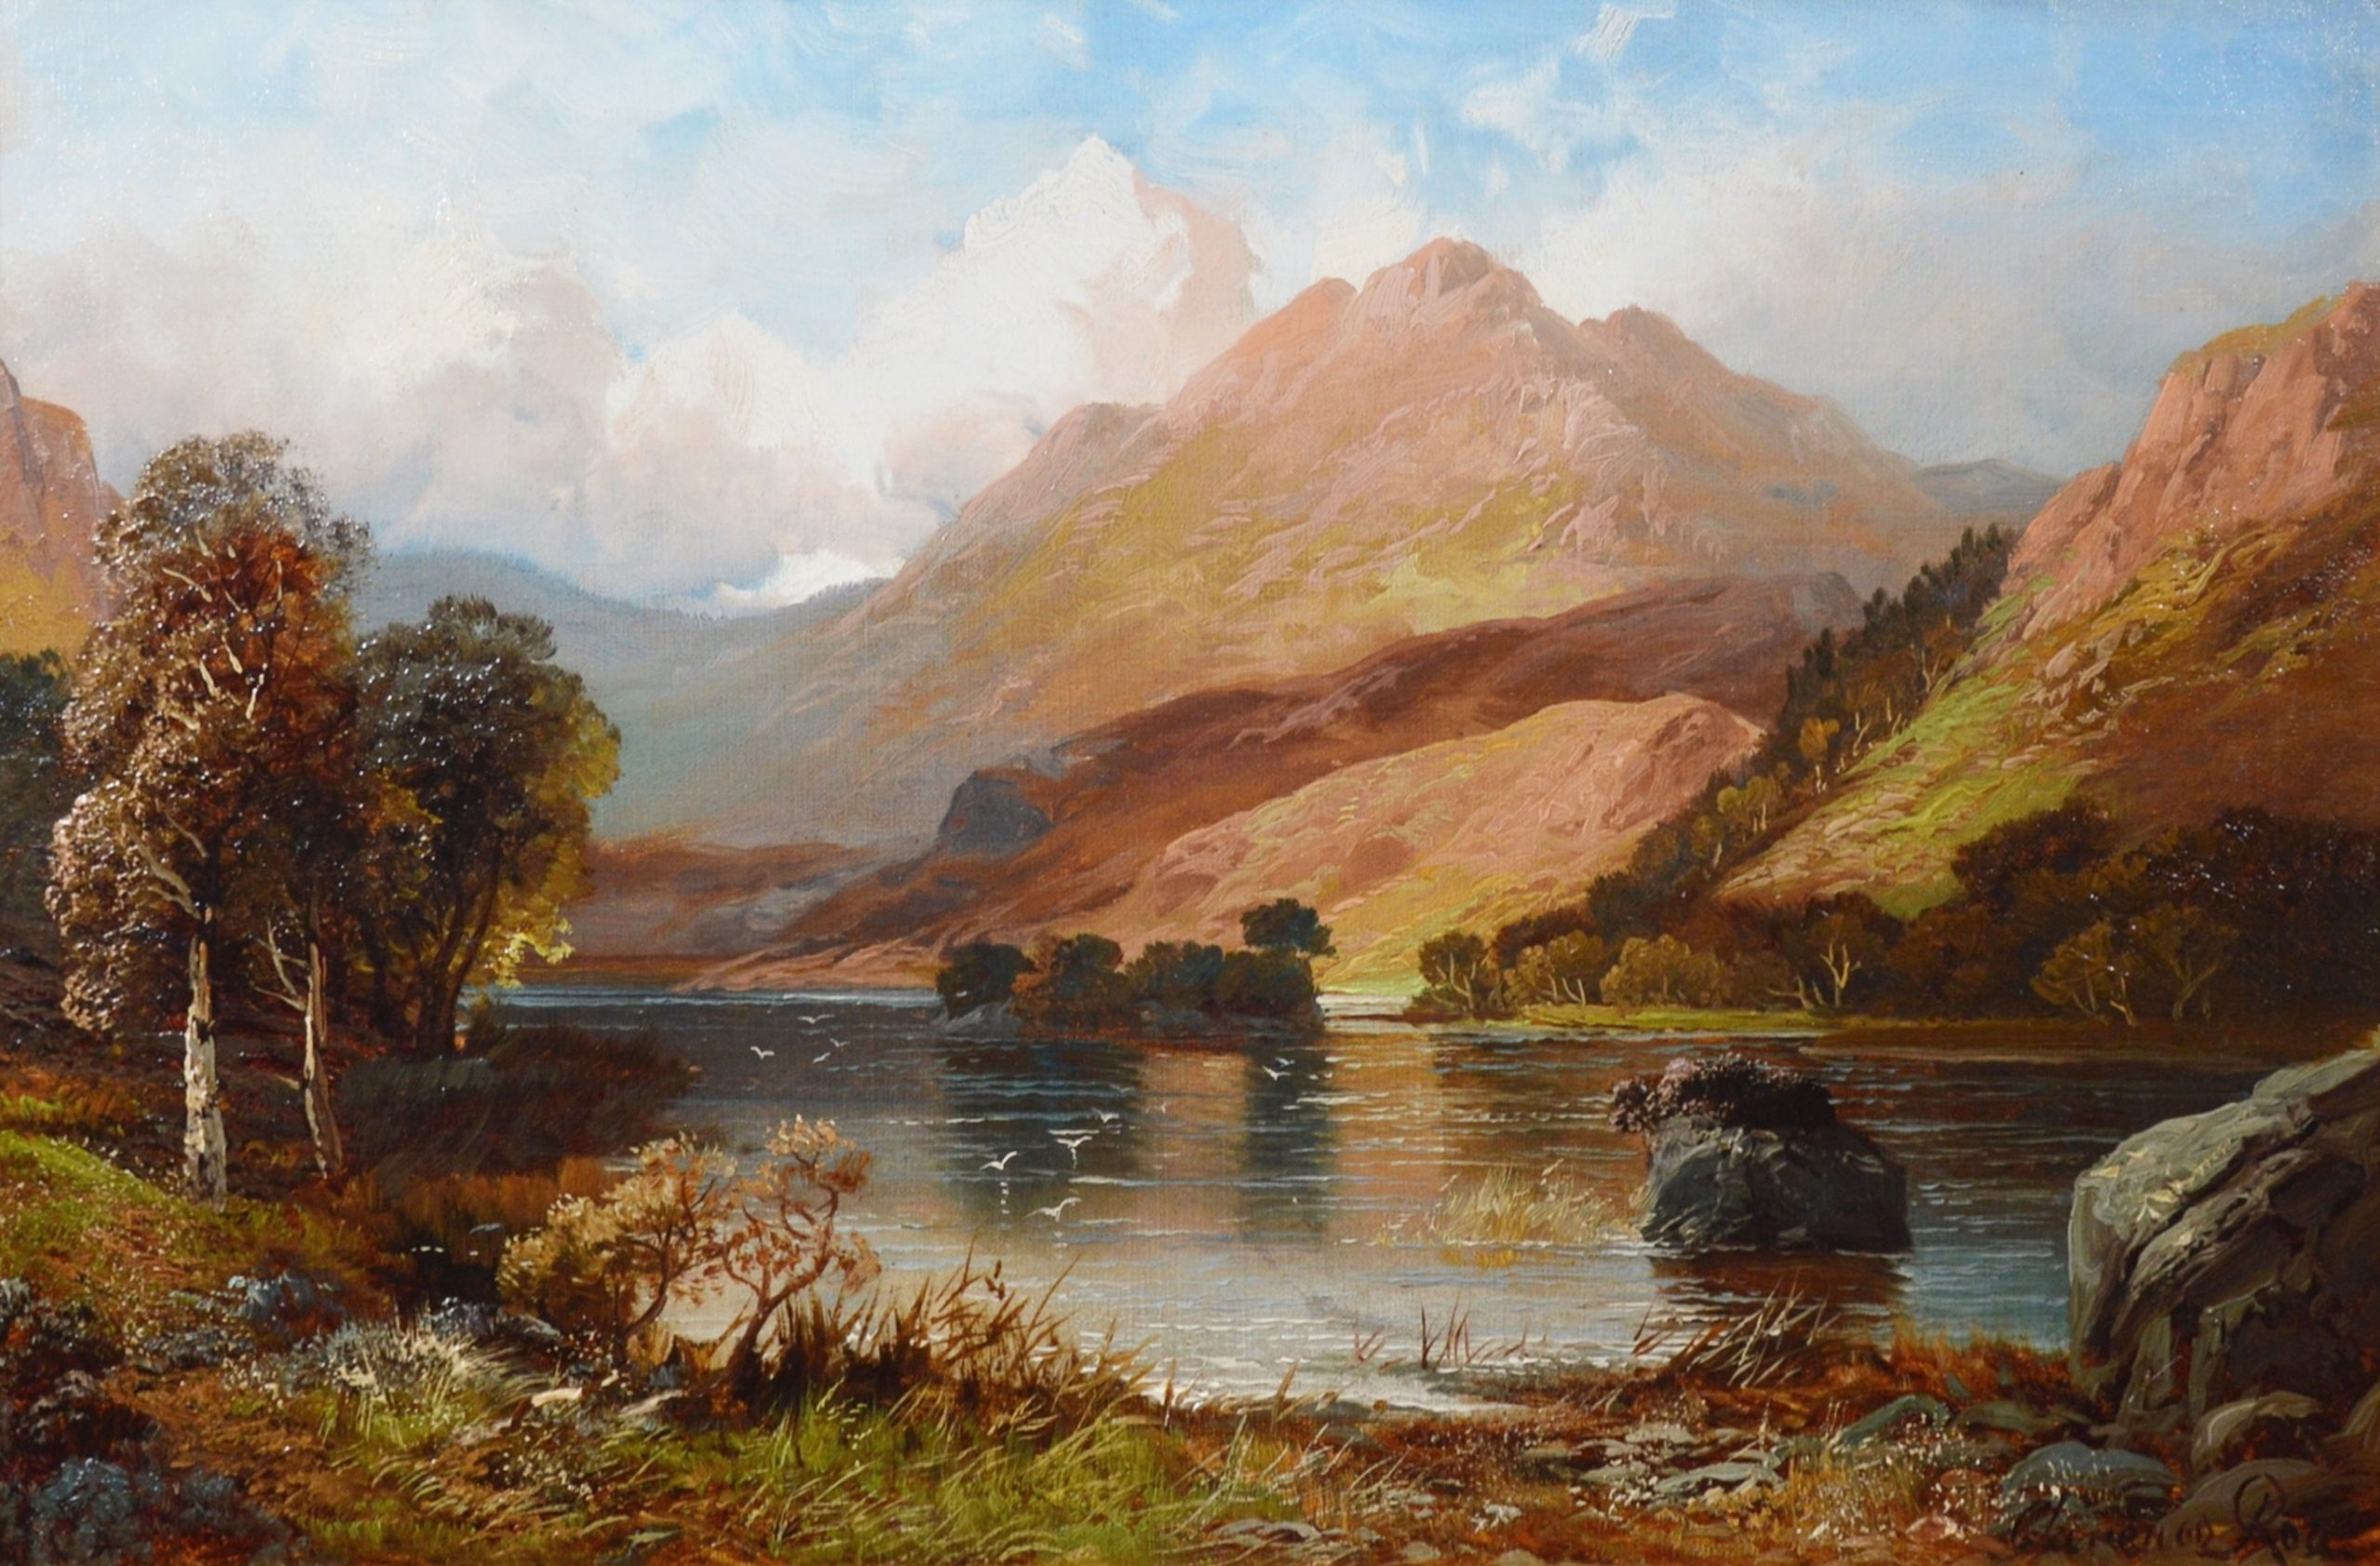 Rydal Water, Westmorland - 19th Century Lake District Landscape Oil Painting Image